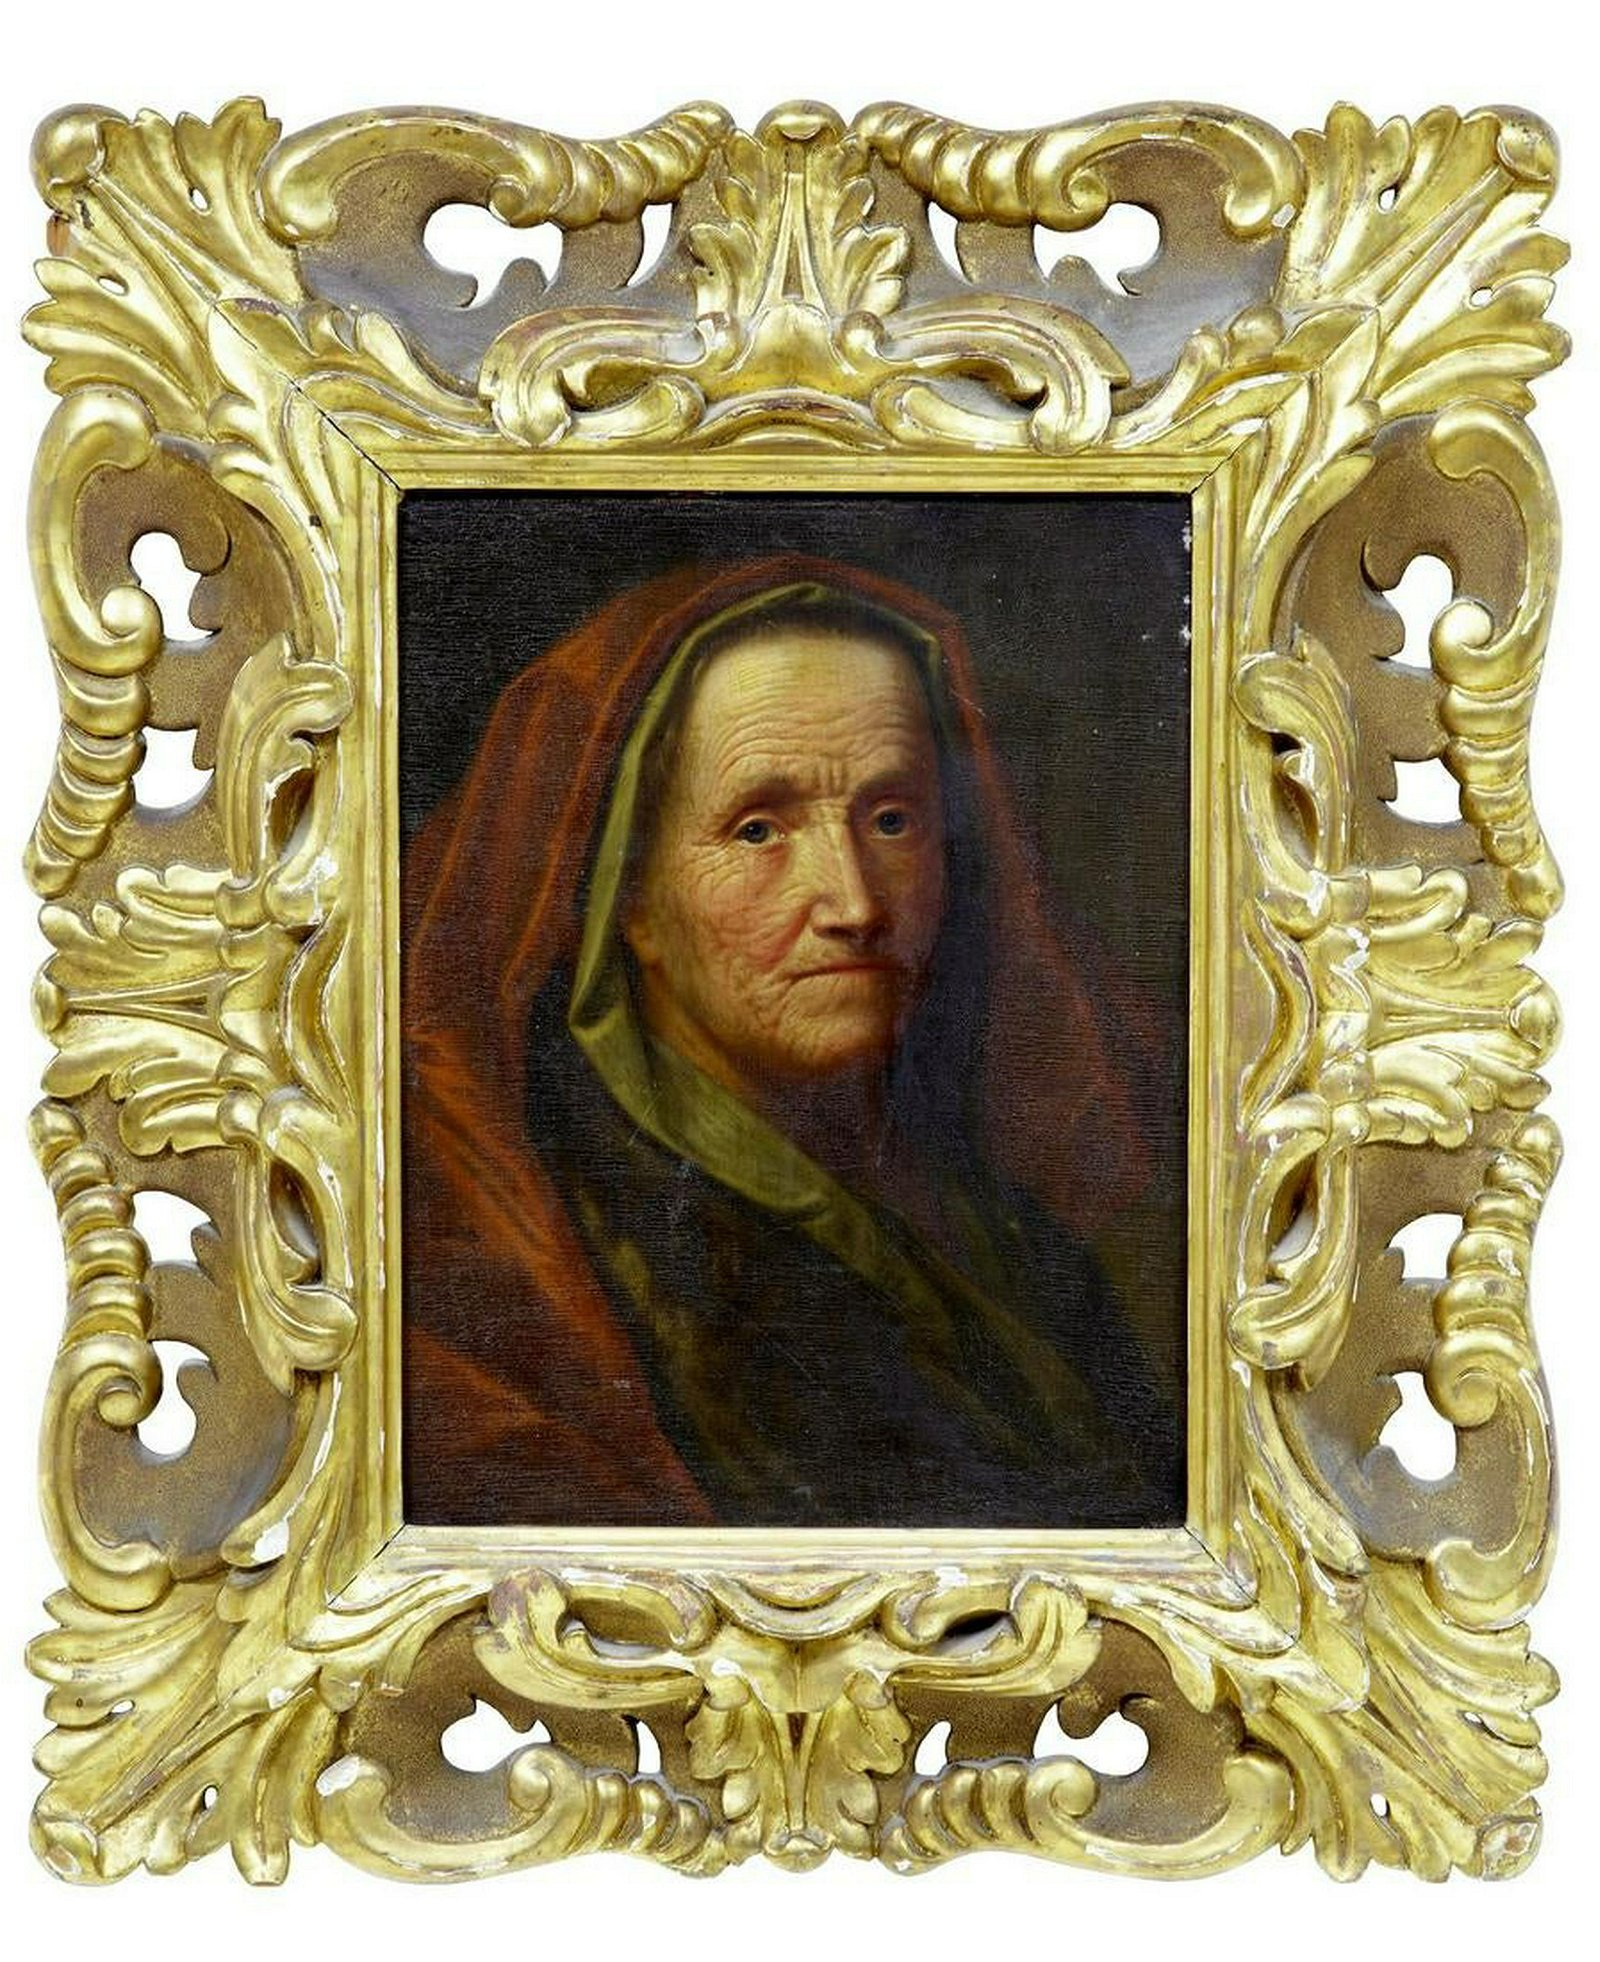 17TH CENTURY OIL ON BOARD OF LADY ATTRIBUTED TO